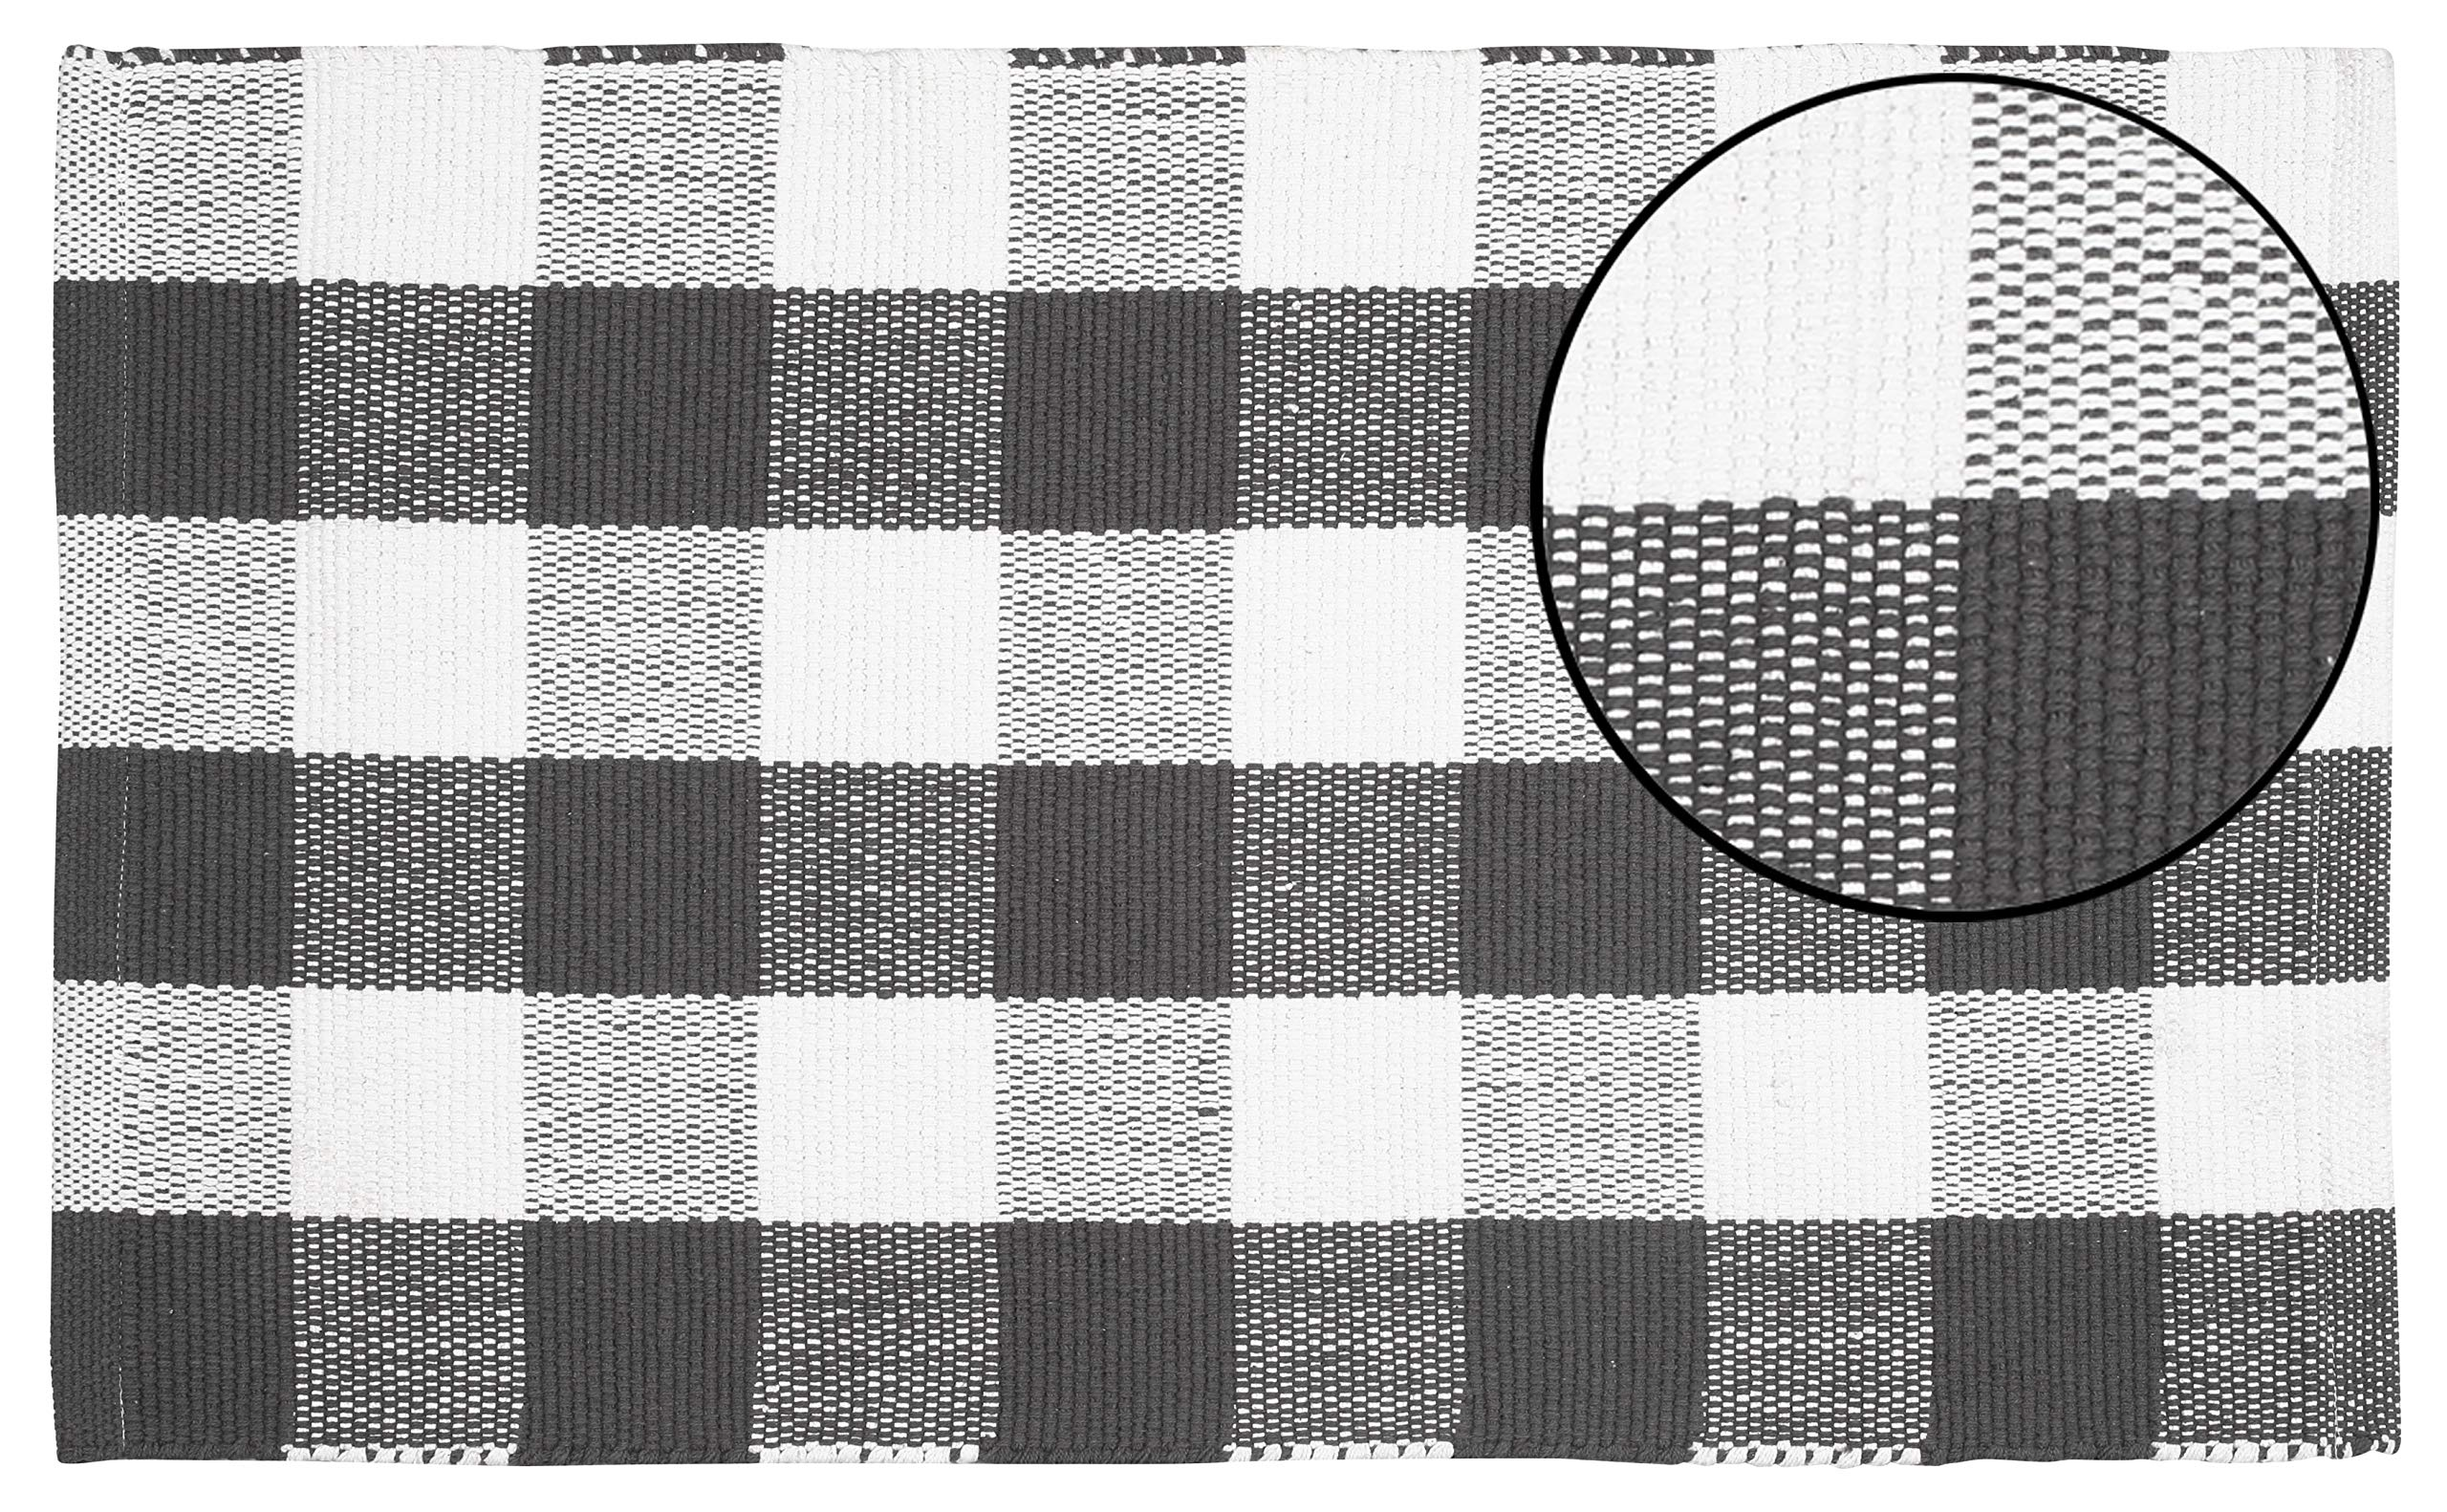 Buffalo Check Rug 21x34 inch -Charcoal White, Hand Woven 100% Cotton Rug in Buffalo Checkered Paterns, Entry Way Rugs, Farmhouse Rug, Kitchen Rugs,Living Room Rug, Kids Room Rug, Set of 1.